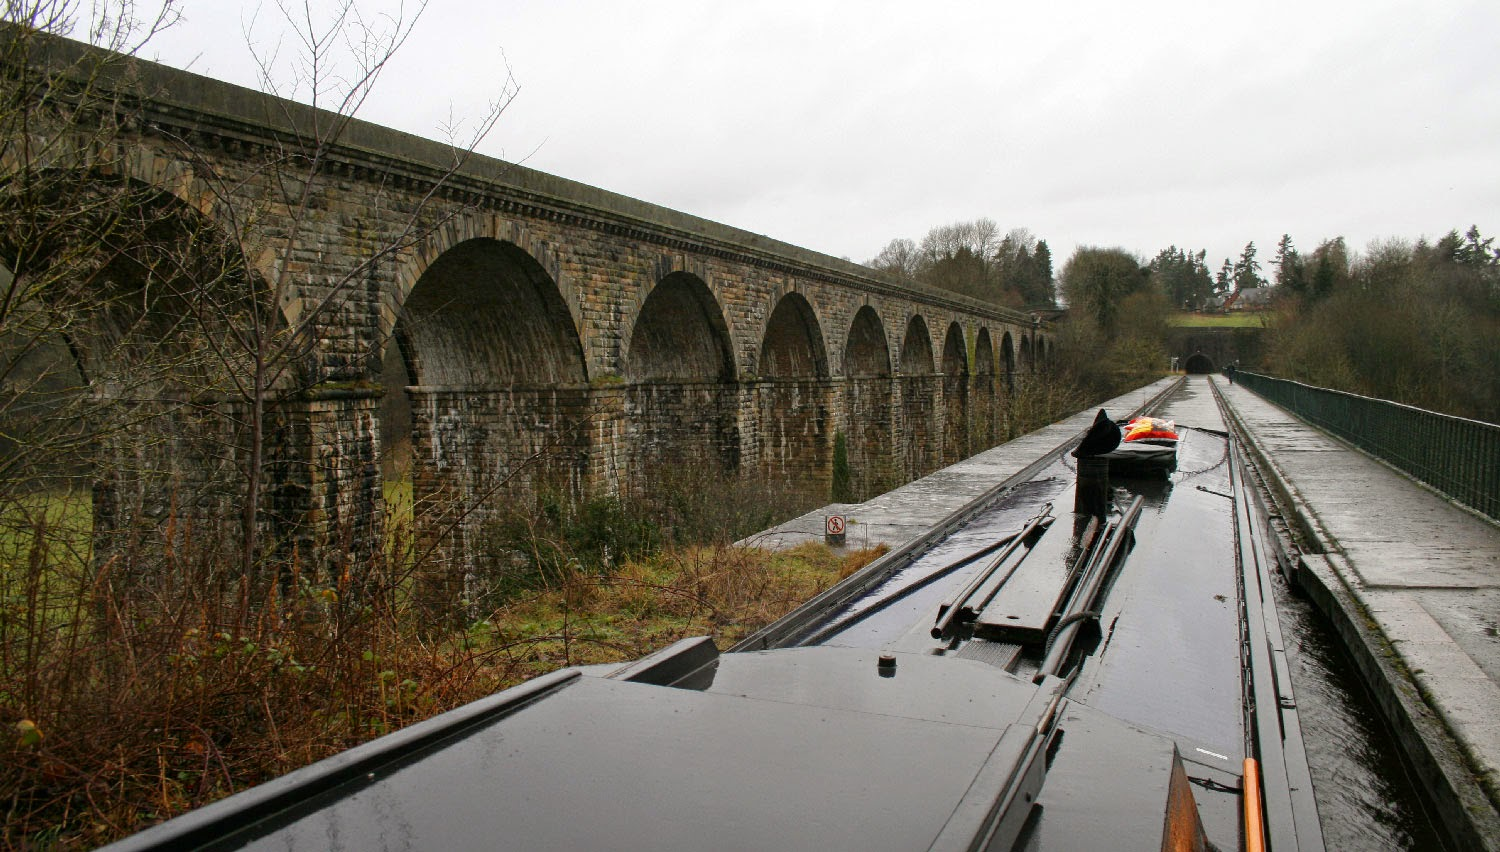 Just entering the aqueduct, viaduct to the left